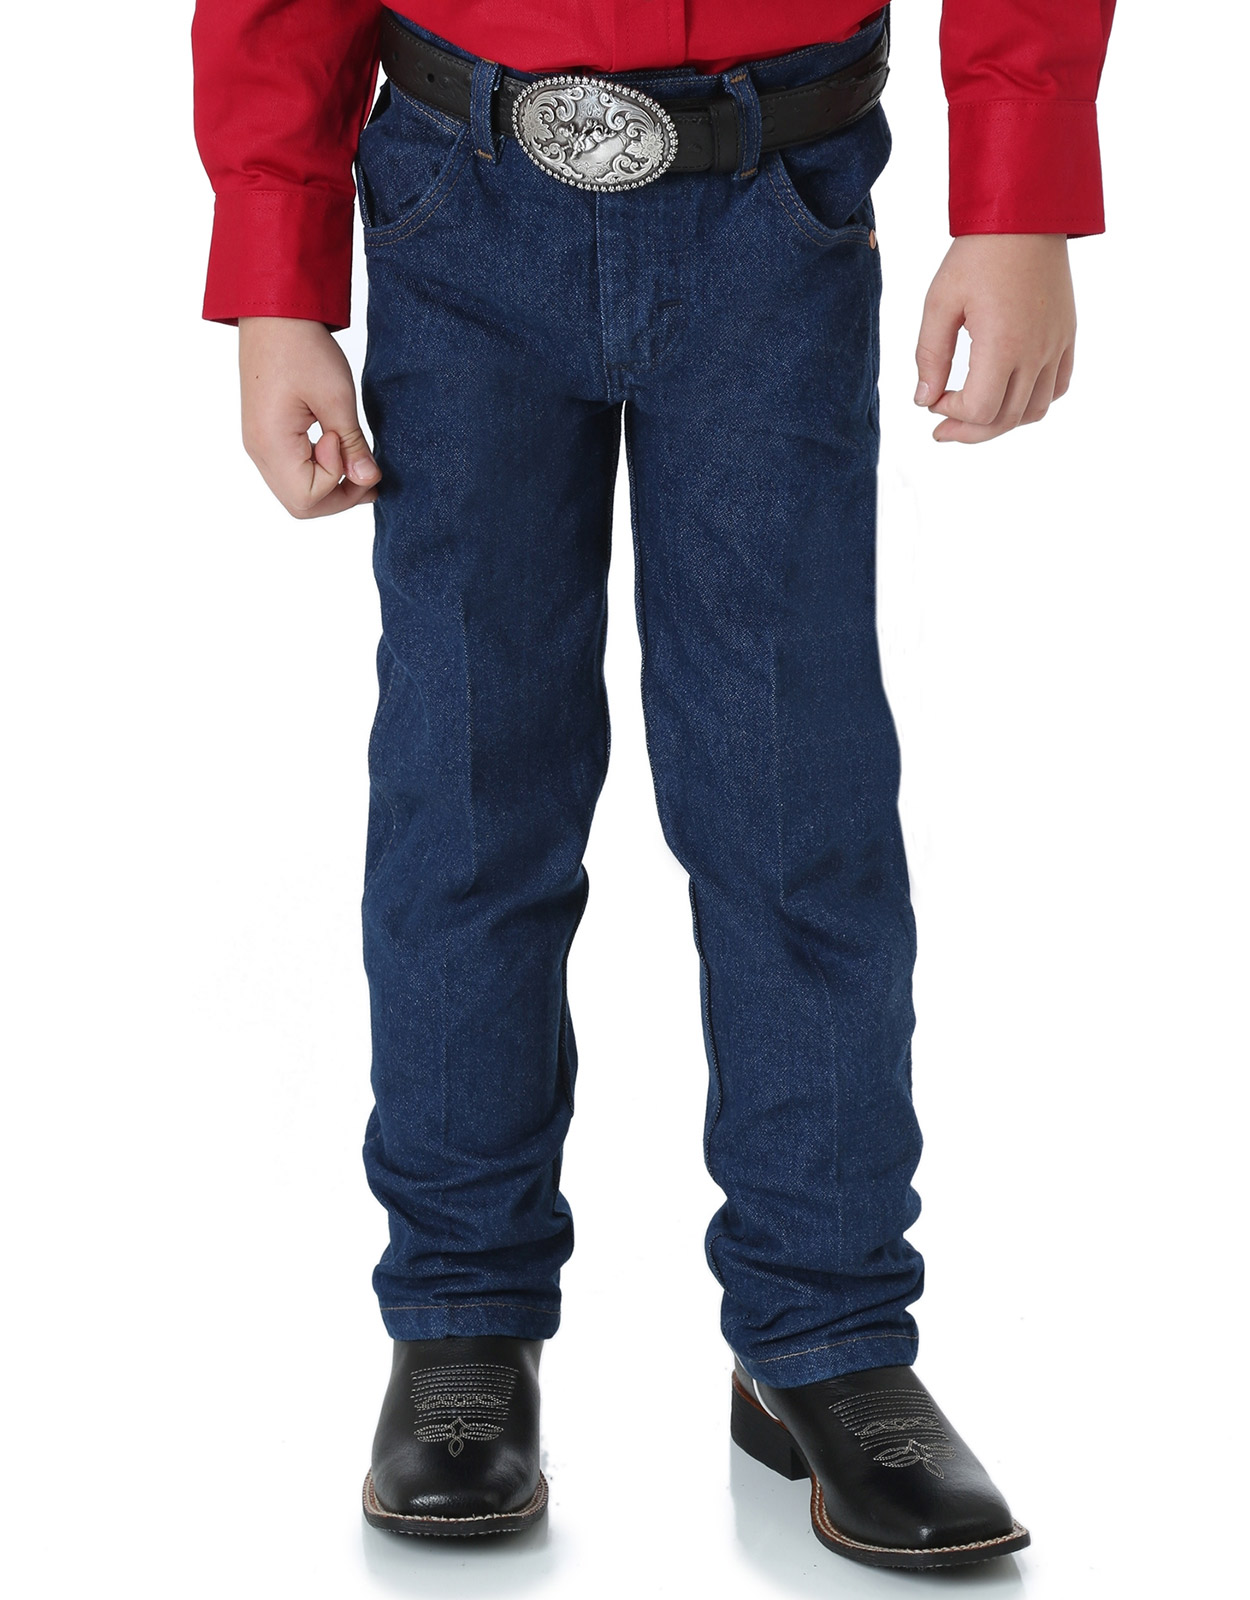 Boys' Wrangler Jeans - Cowboy Cut Original Fit Prewashed (Sizes 1T-7)